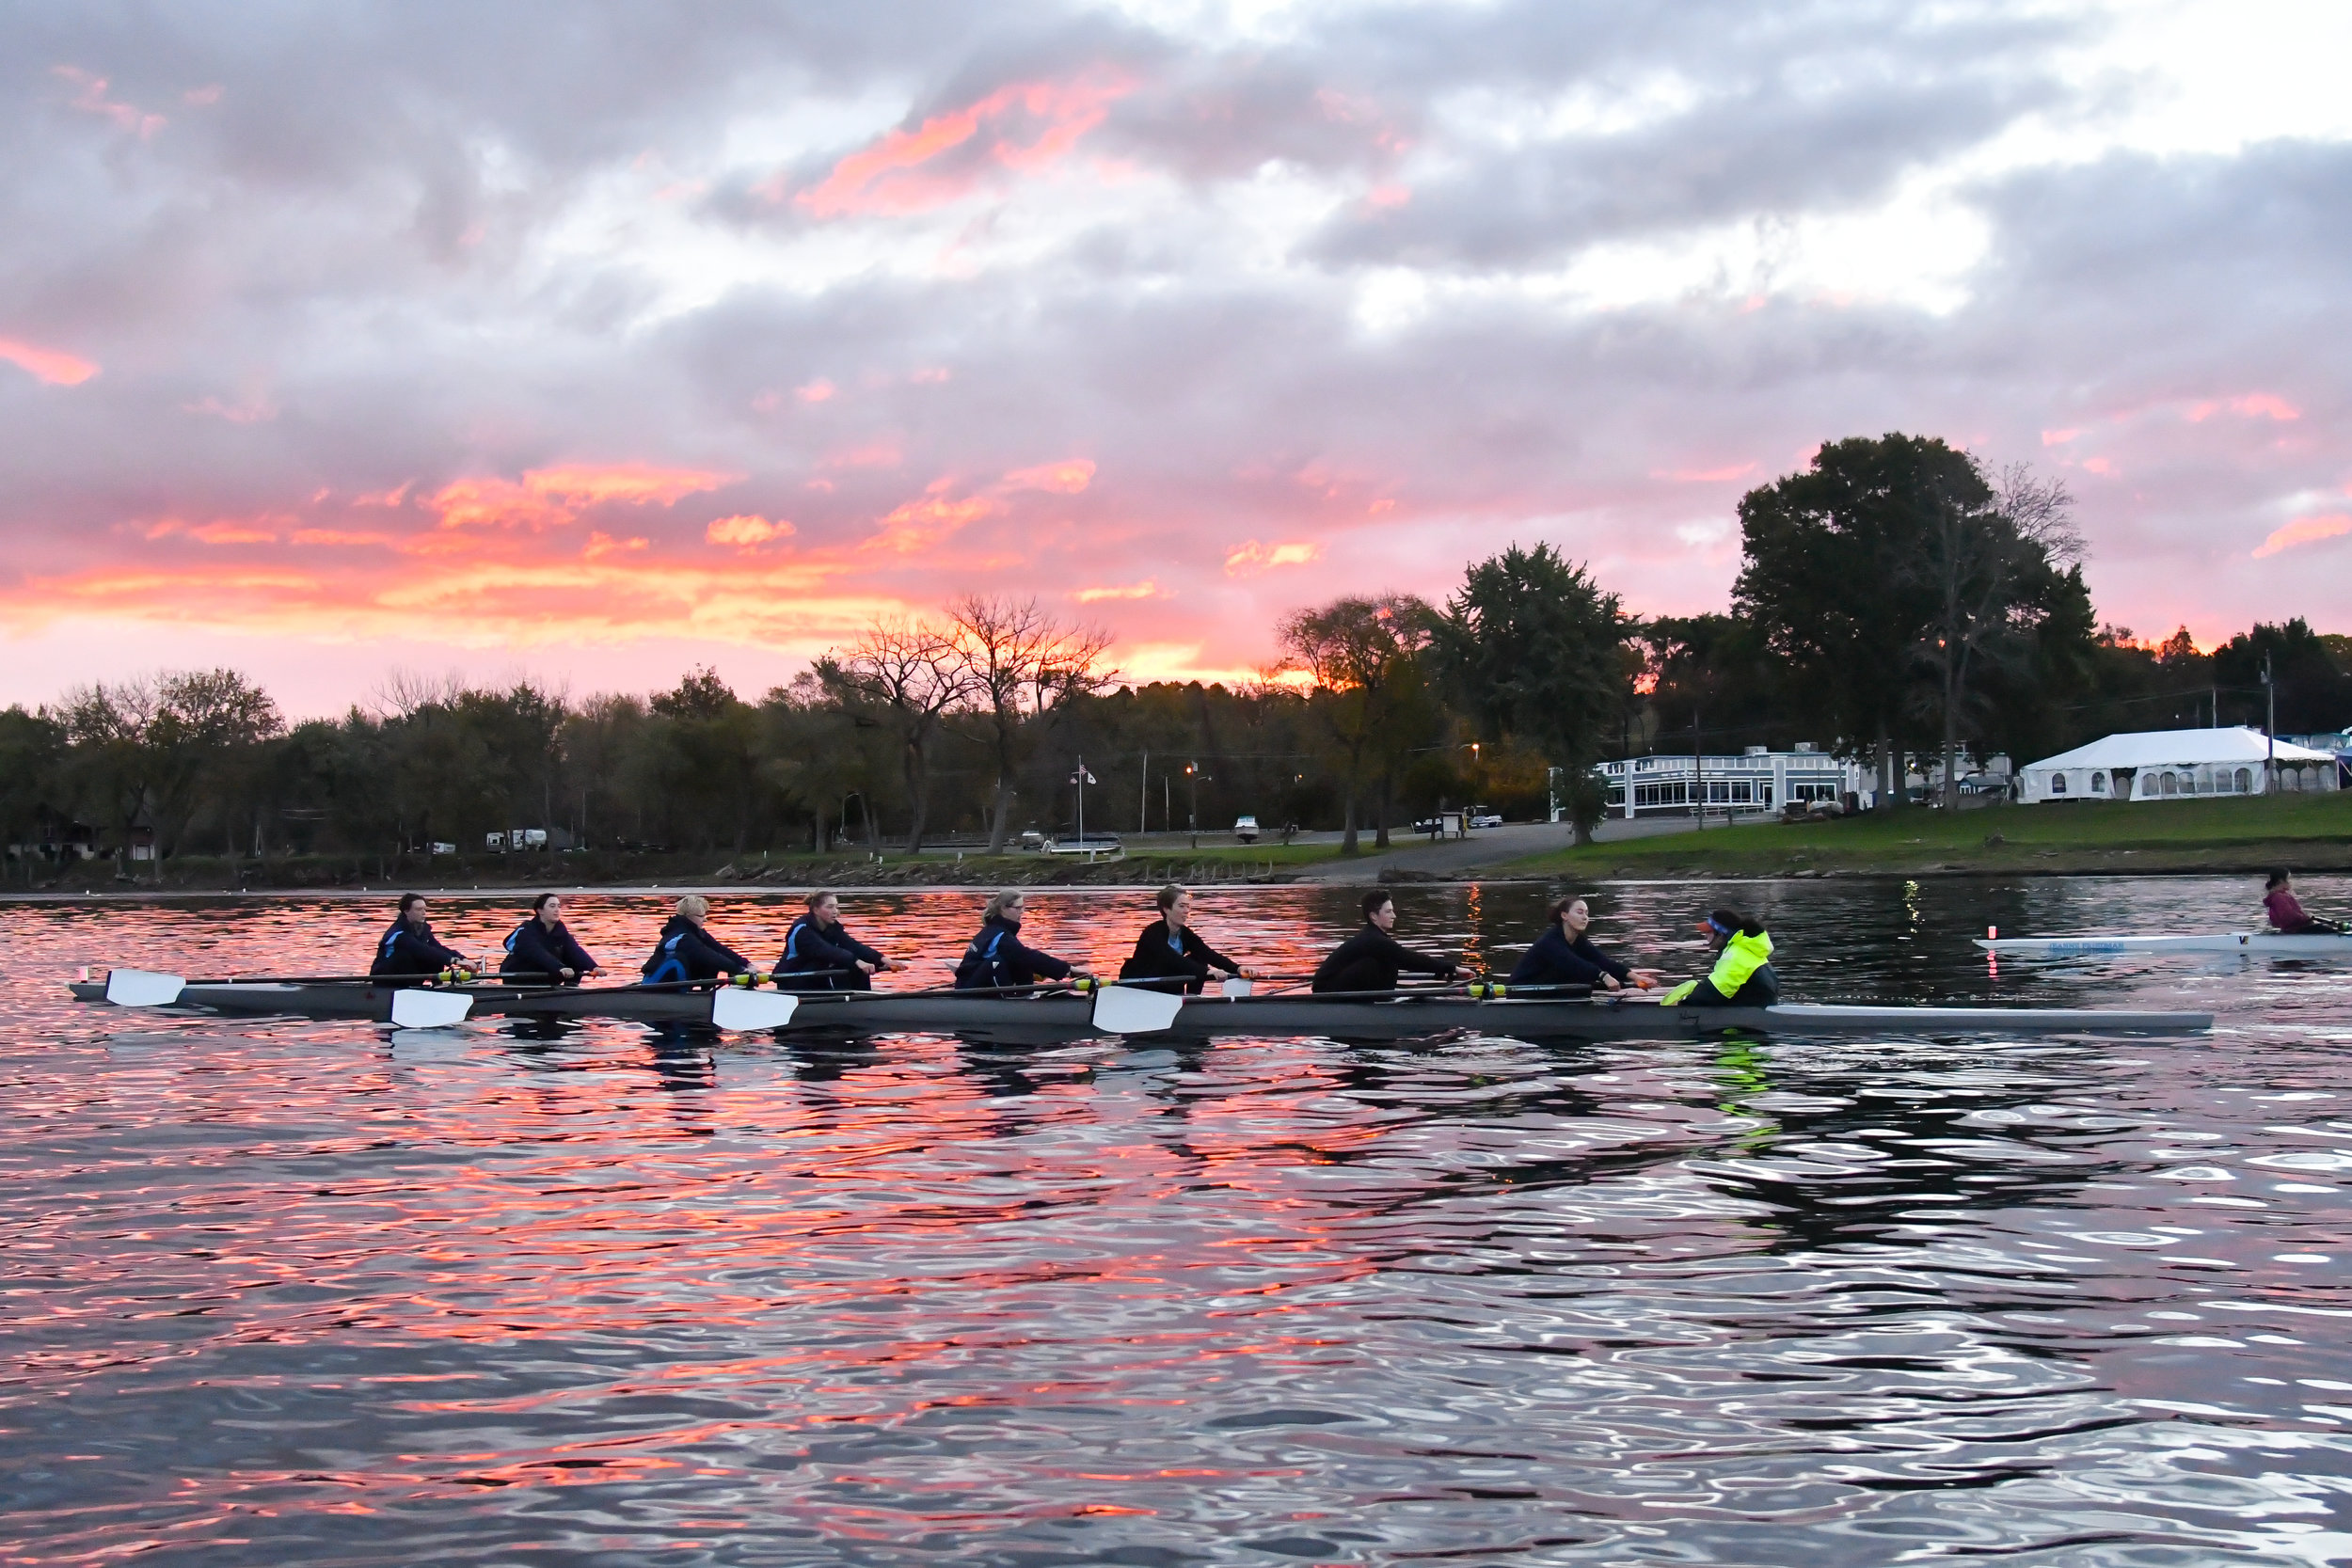 Photo courtesy of RJB Sports Photography Over spring break, the rowing team traveled to Clemson, South Caro- lina for their week-long training trip hosted at Clemson University.